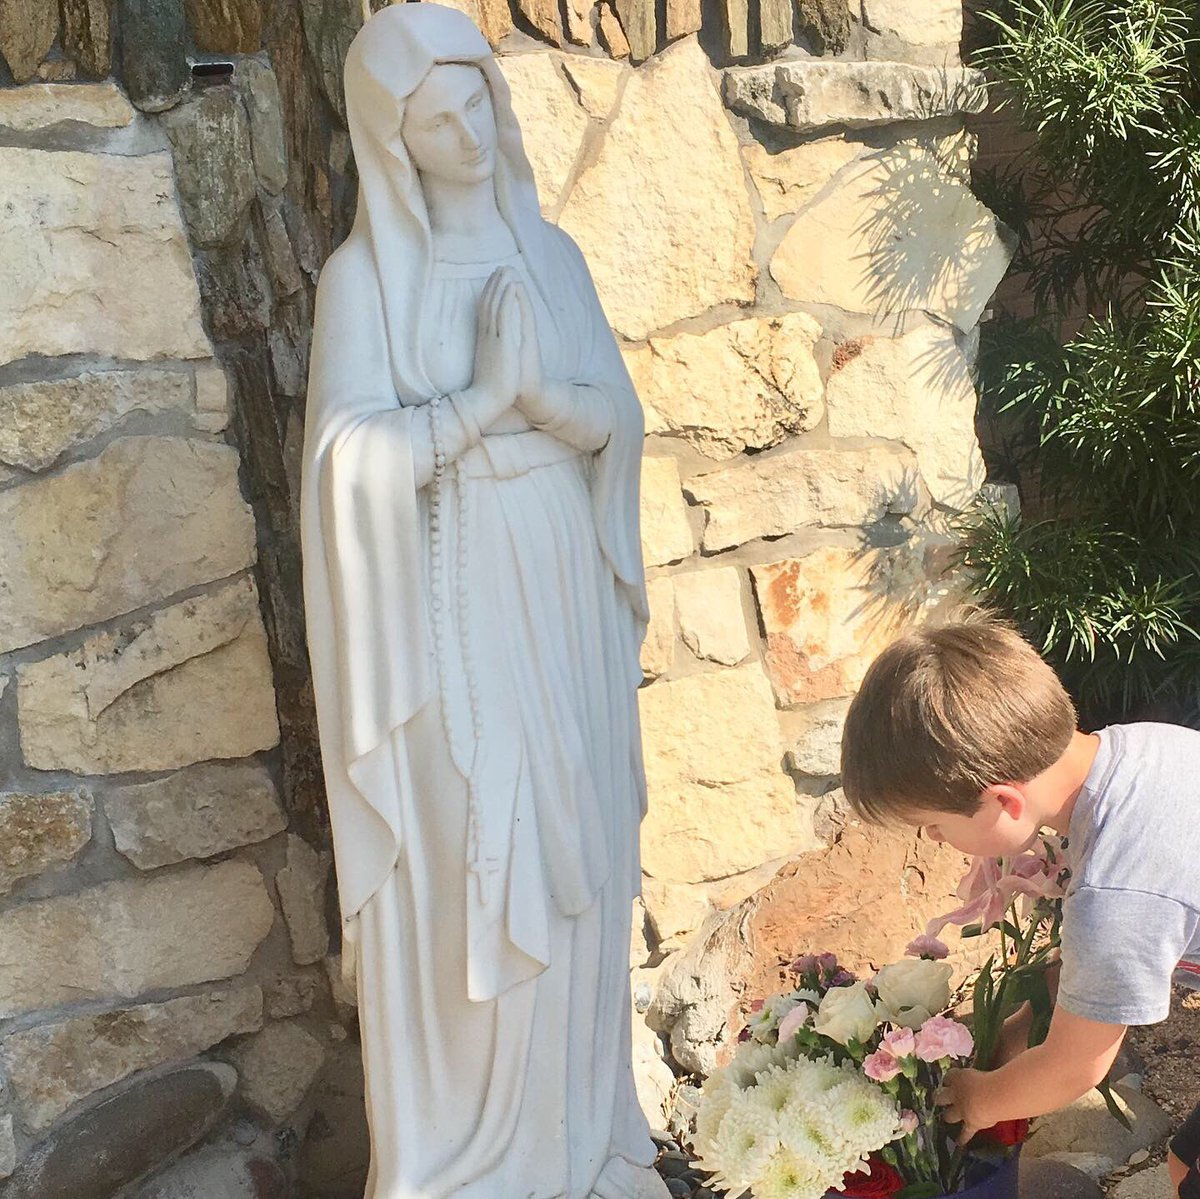 """Our PreK students Celebrating our Mother Mary's Birthday!  """"Our Mother Mary is full of beauty because she is full of grace""""  - Pope Francis  #mothermaryprayforus #marymotherofgod #regnumchristi #semperaltius #thehighlandsschooltx<br>http://pic.twitter.com/2SLKh0LOnj"""